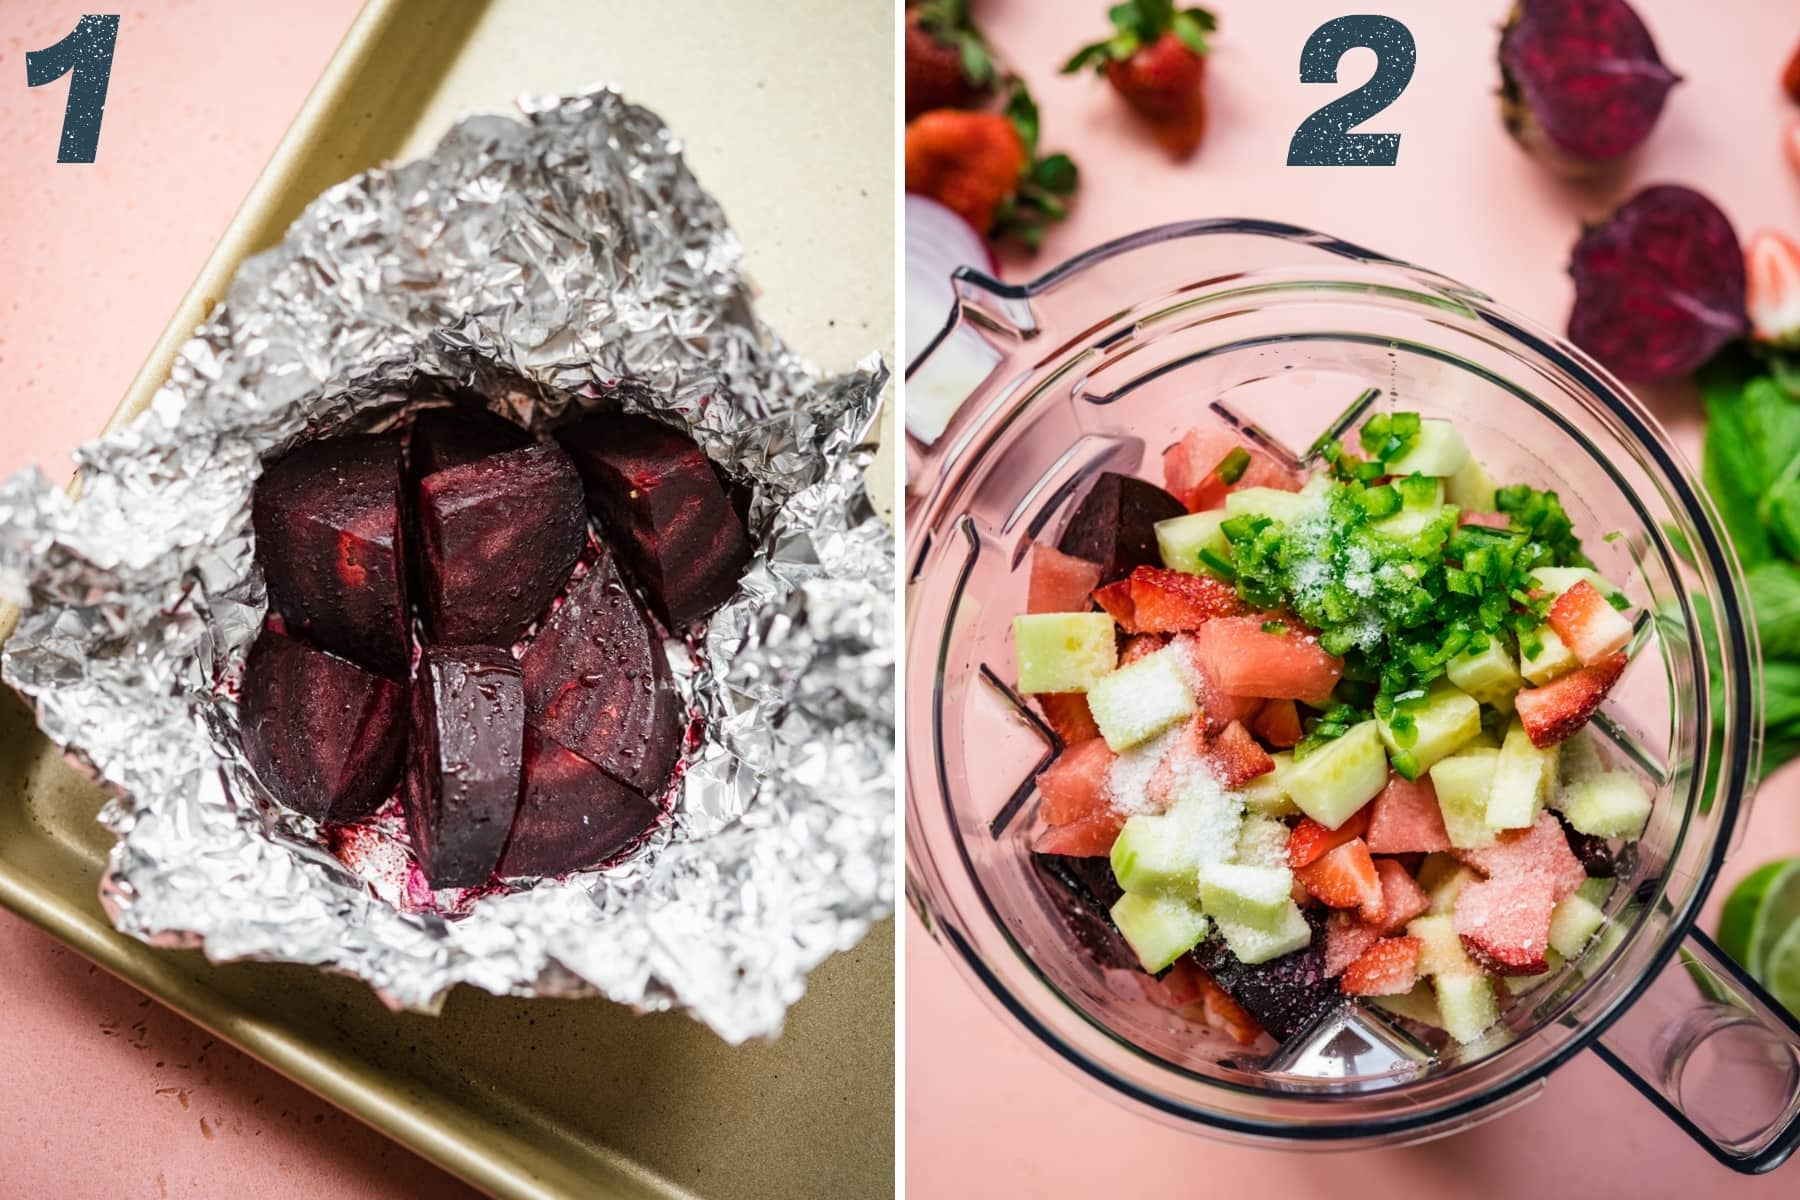 on the left: roasted beets in aluminum foil. on the right: ingredients in blender for strawberry watermelon gazpacho.